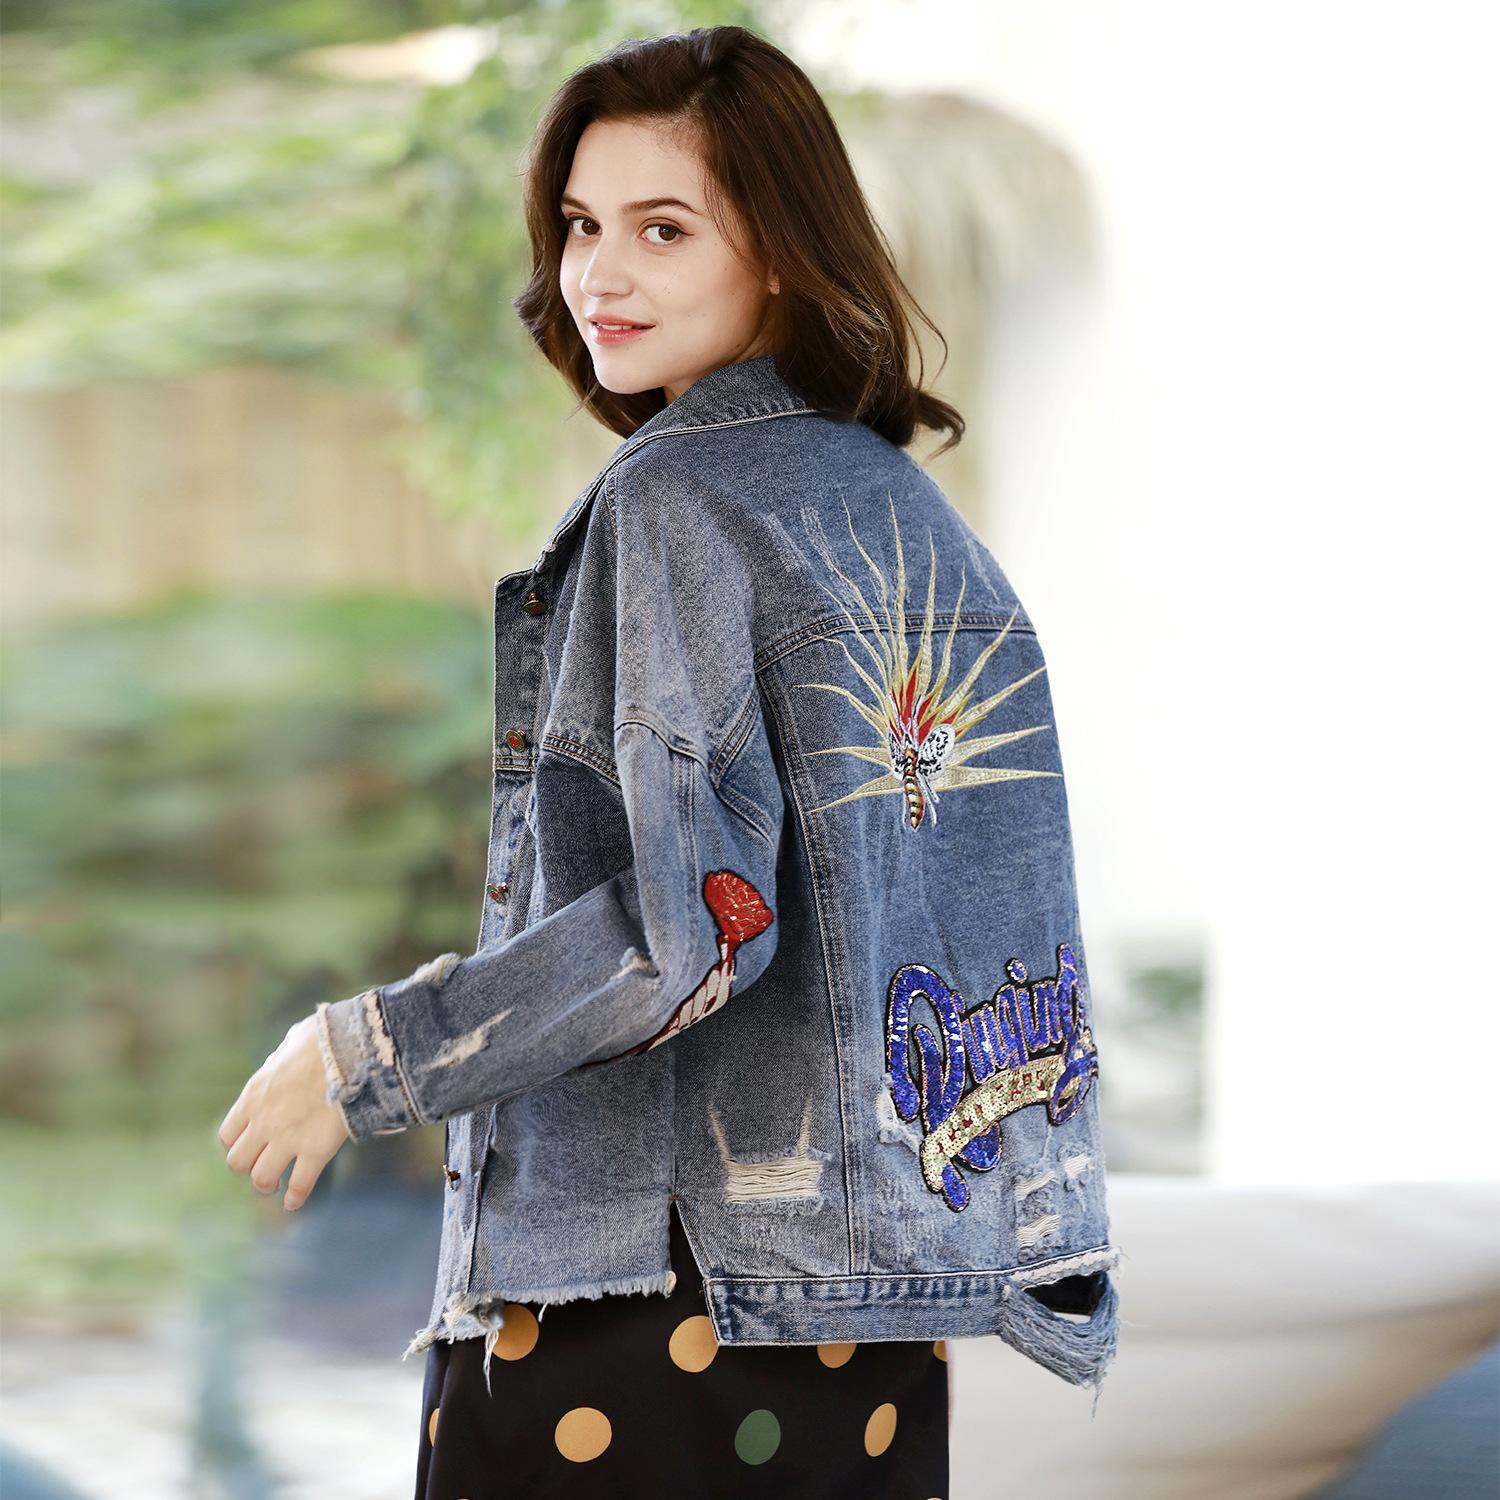 cea763f9d7d94 Women s Embroidered Jeans Jacket Spring 2019 New Long-sleeved Jacket ...